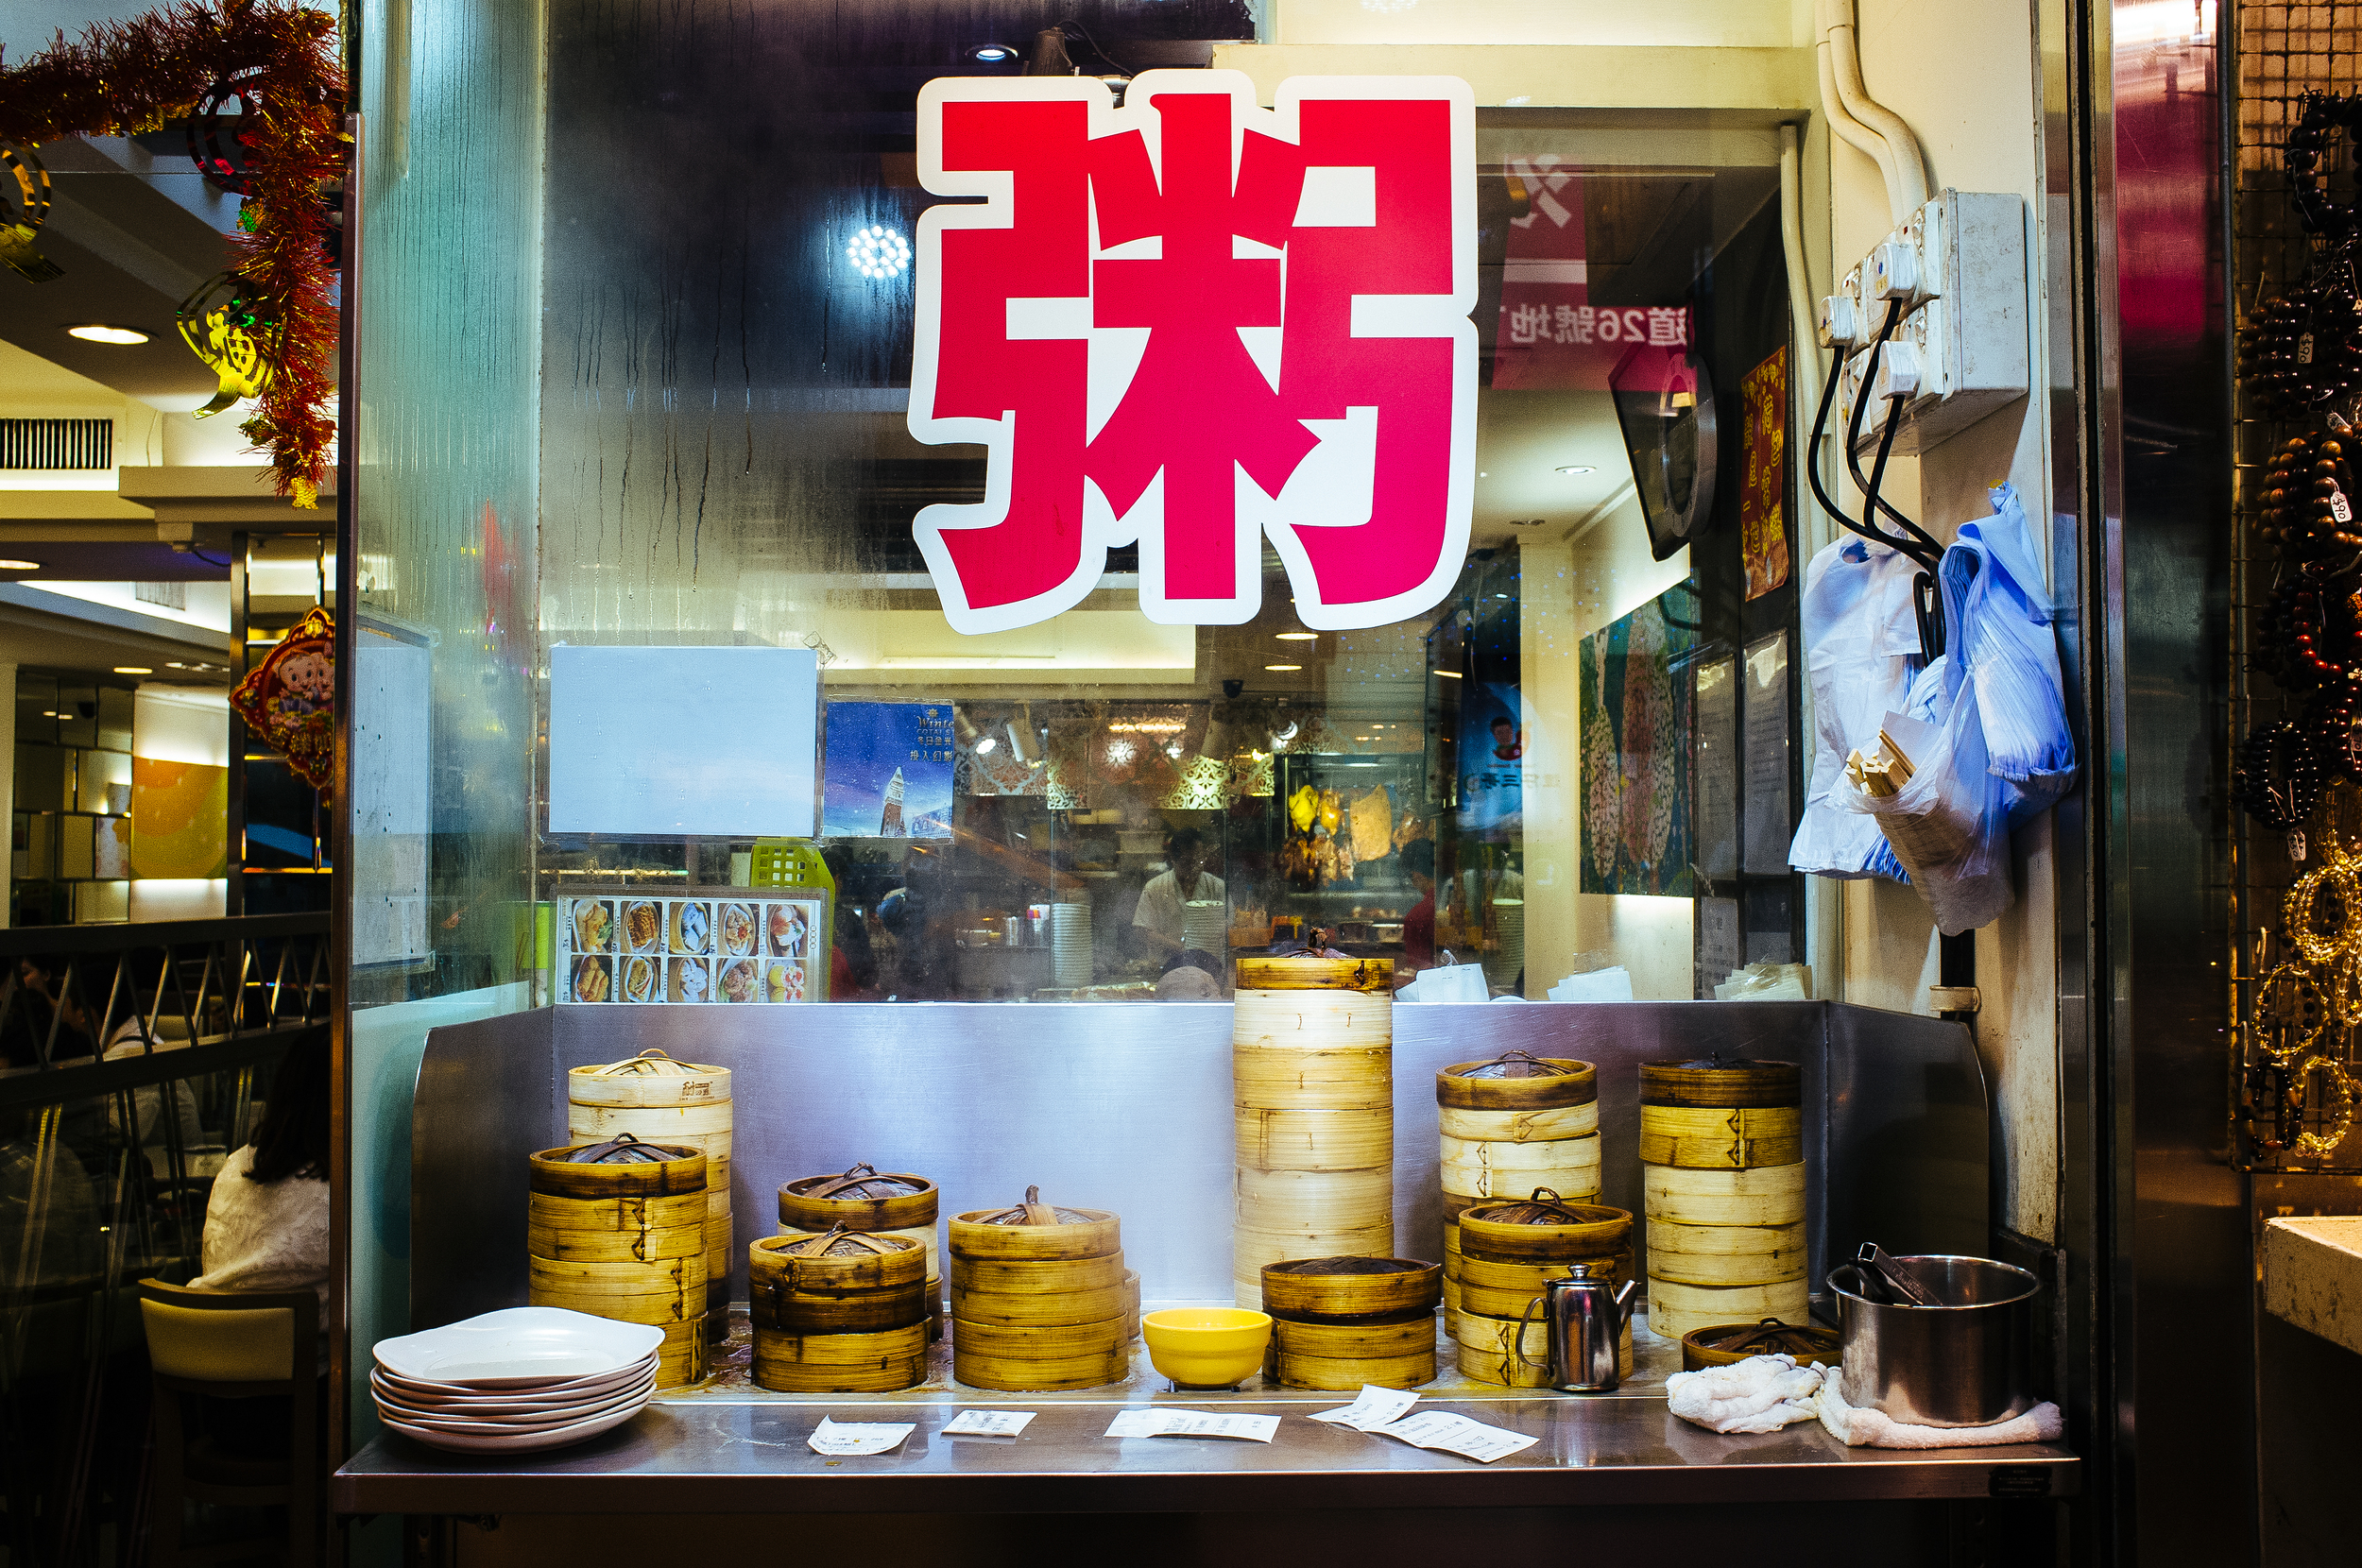 Interestingly, many restaurants had cooking around in front. Space in tight in HK.